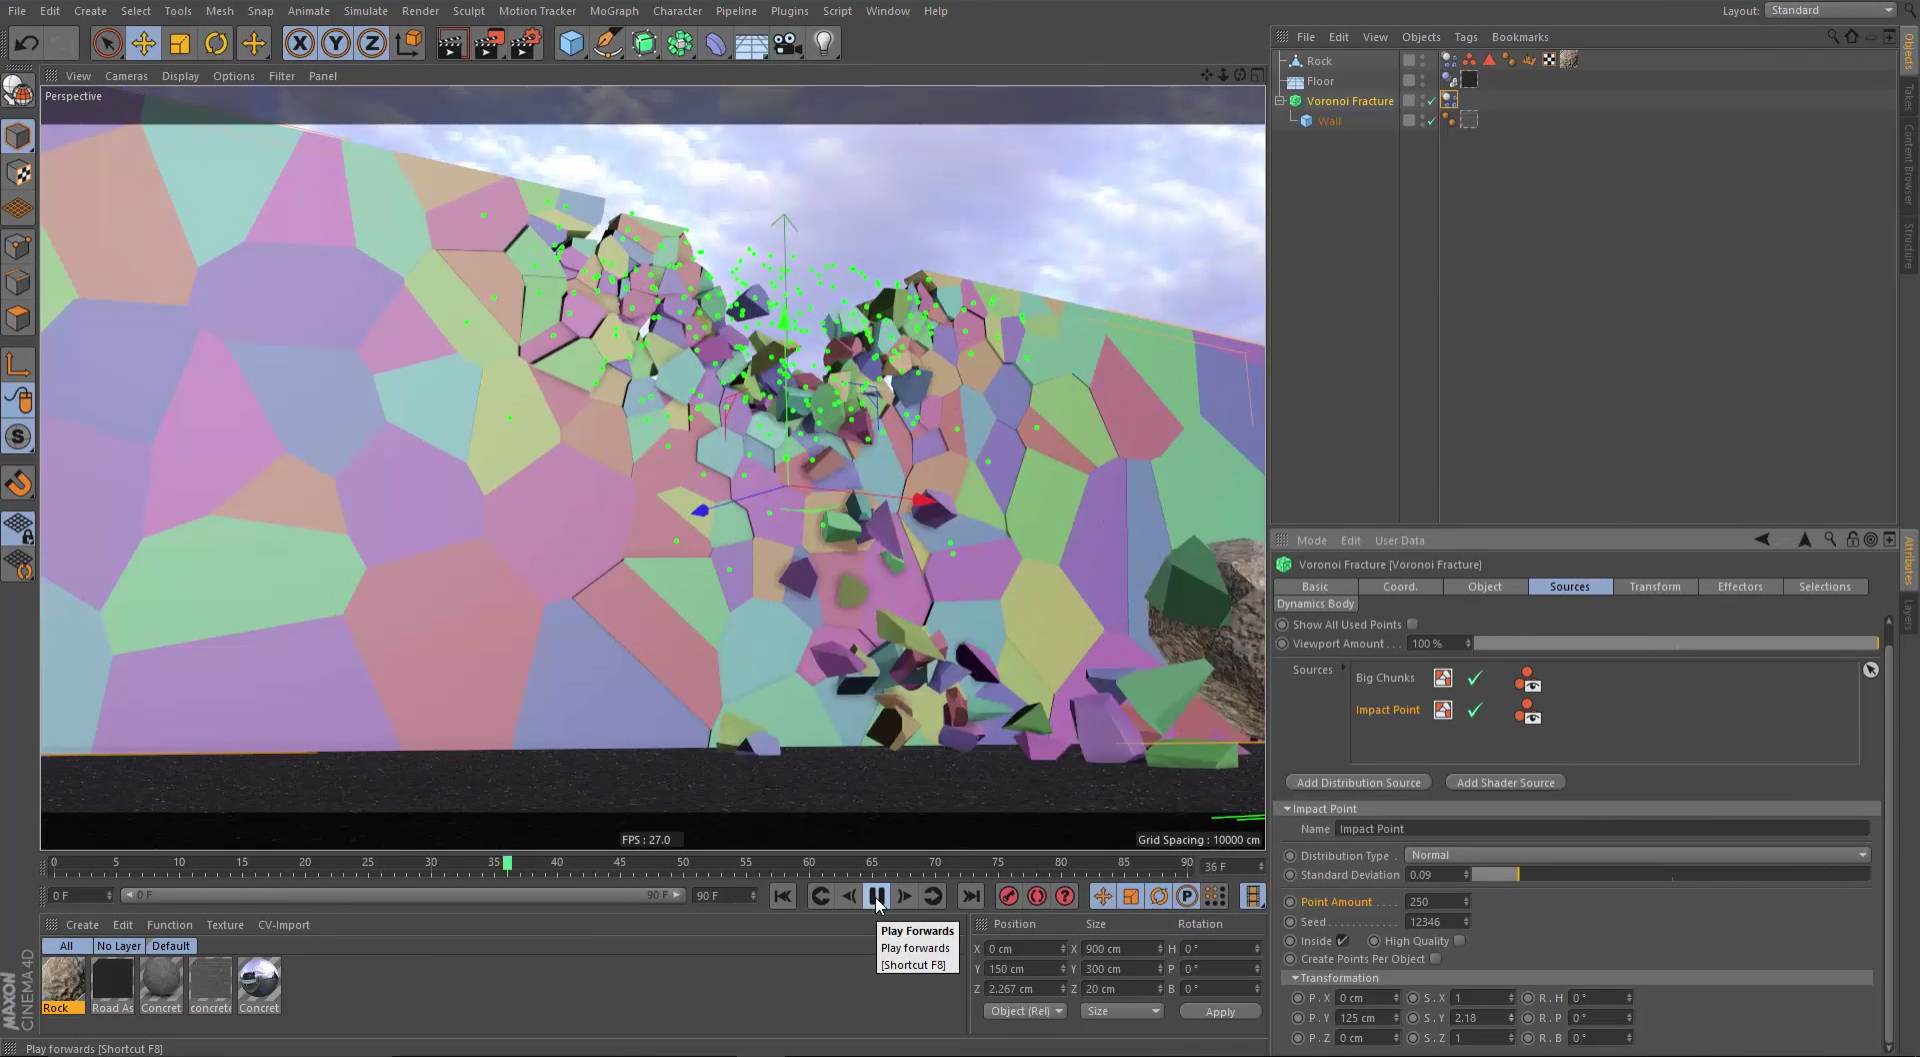 Voronoi fracturing allows you to break up and fracture your models in multiple ways.